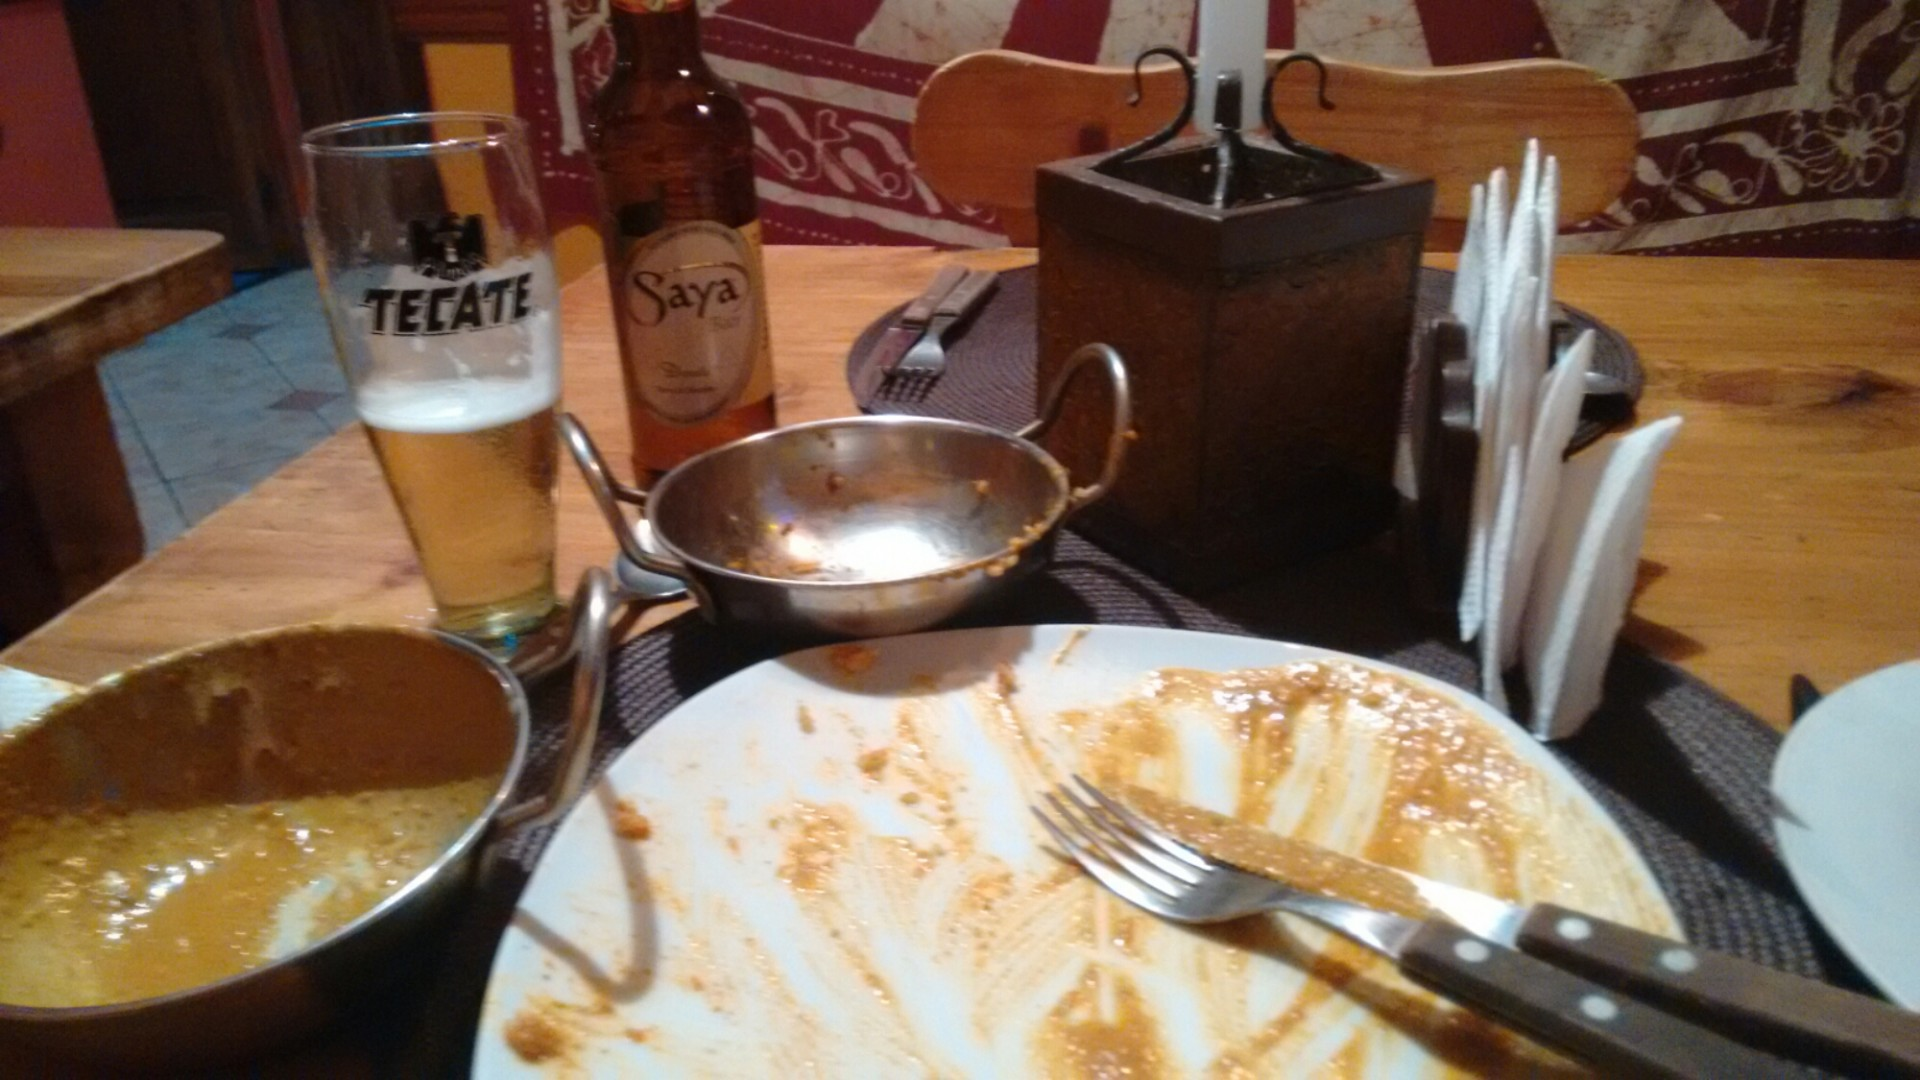 This underwhelming snap of my already eaten llama curry sits in place of a great one of the restaurant entrance barbecue. Unfortunately, that photo seems to have been misplaced. Don't worry, I'm as disappointed that you.